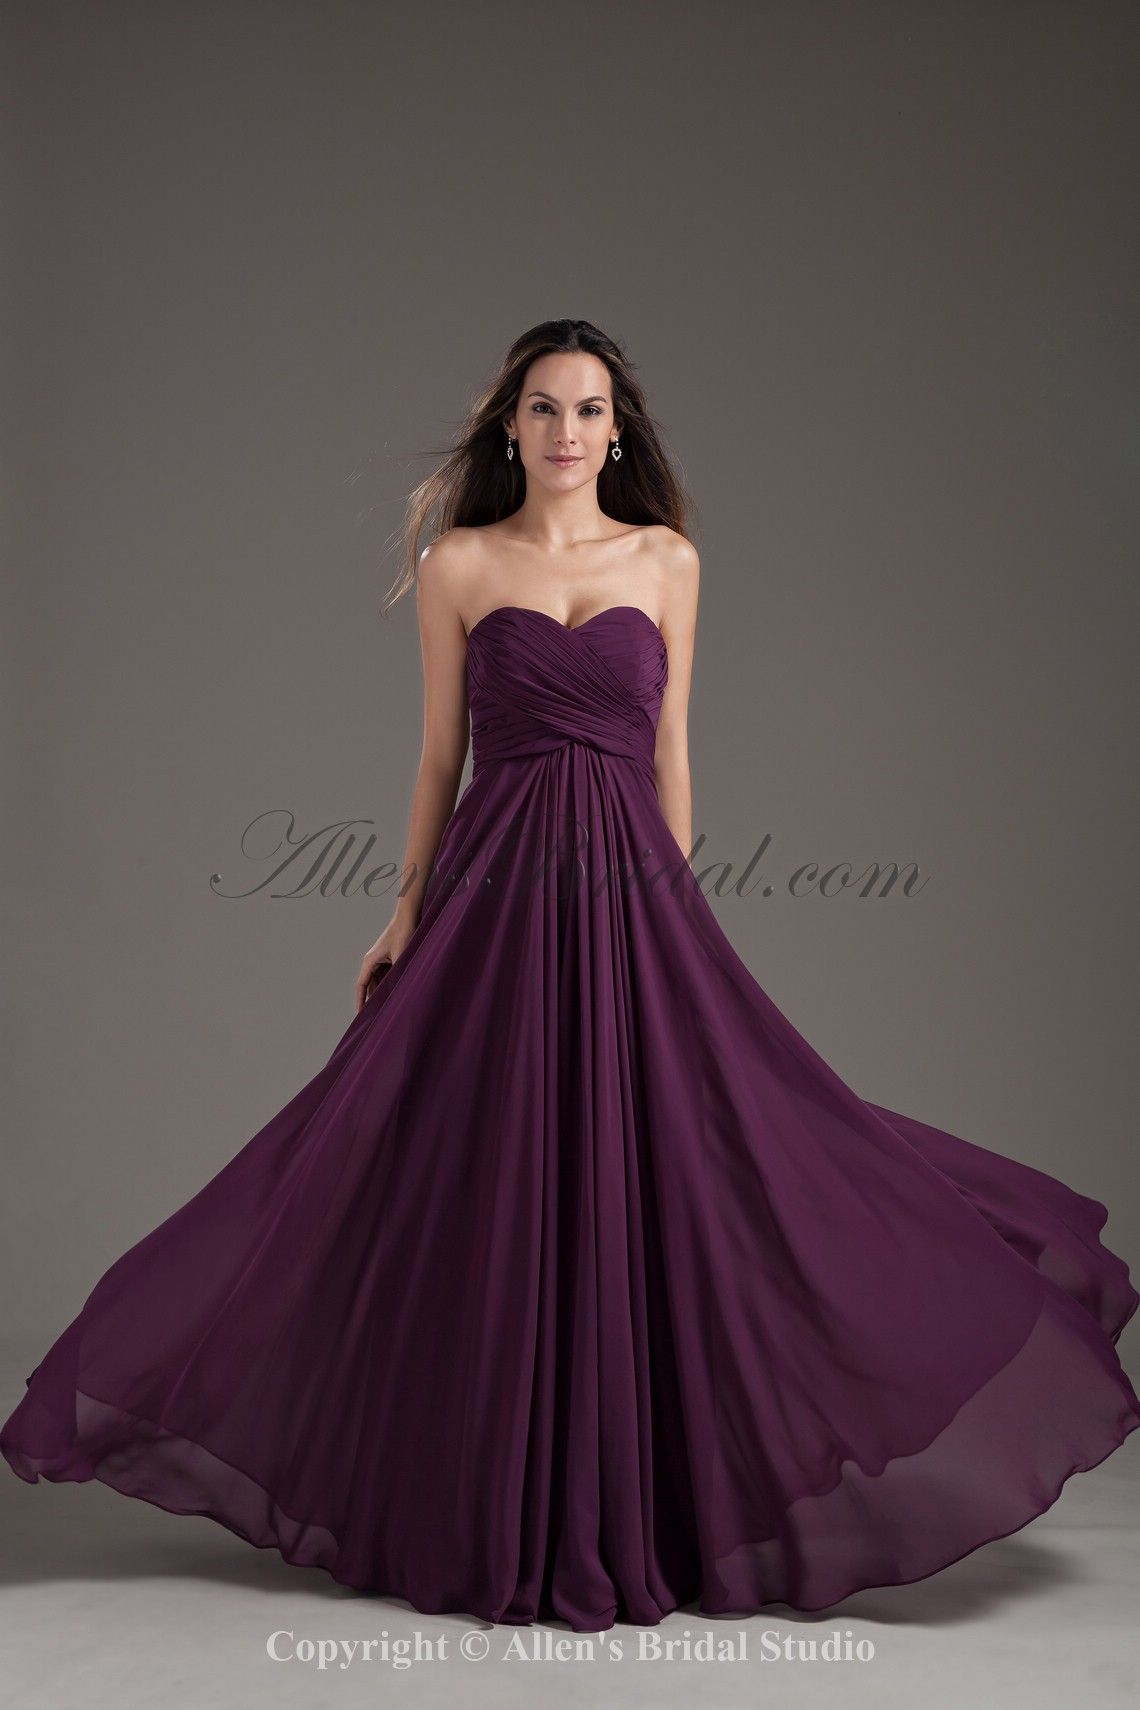 purple floor length dress - Google Search | Dresses | Pinterest ...